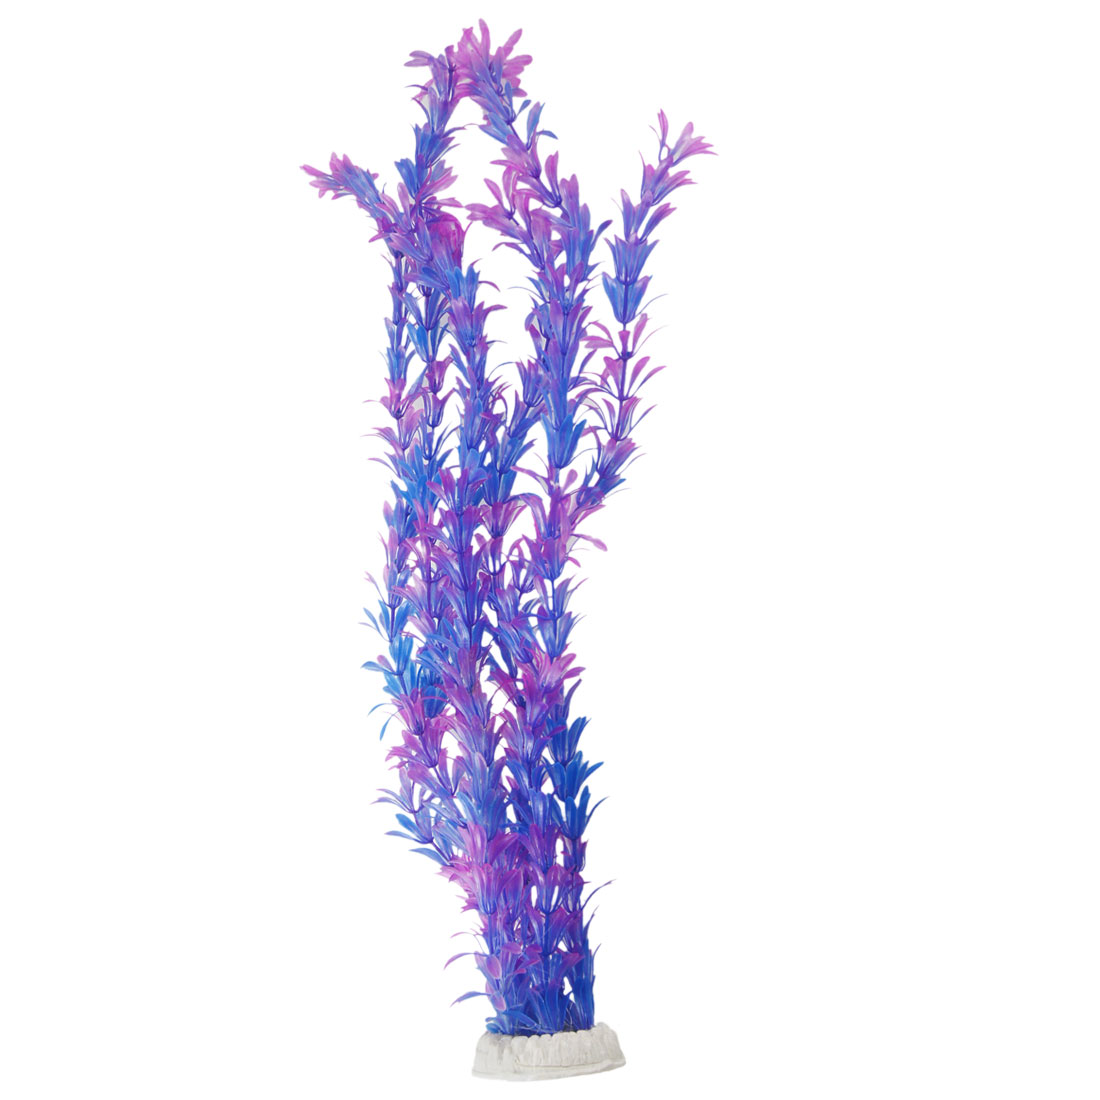 Aquarium Fish Tank Underwater Aquascaping Fuchsia Blue Plastic Plant 20.9""